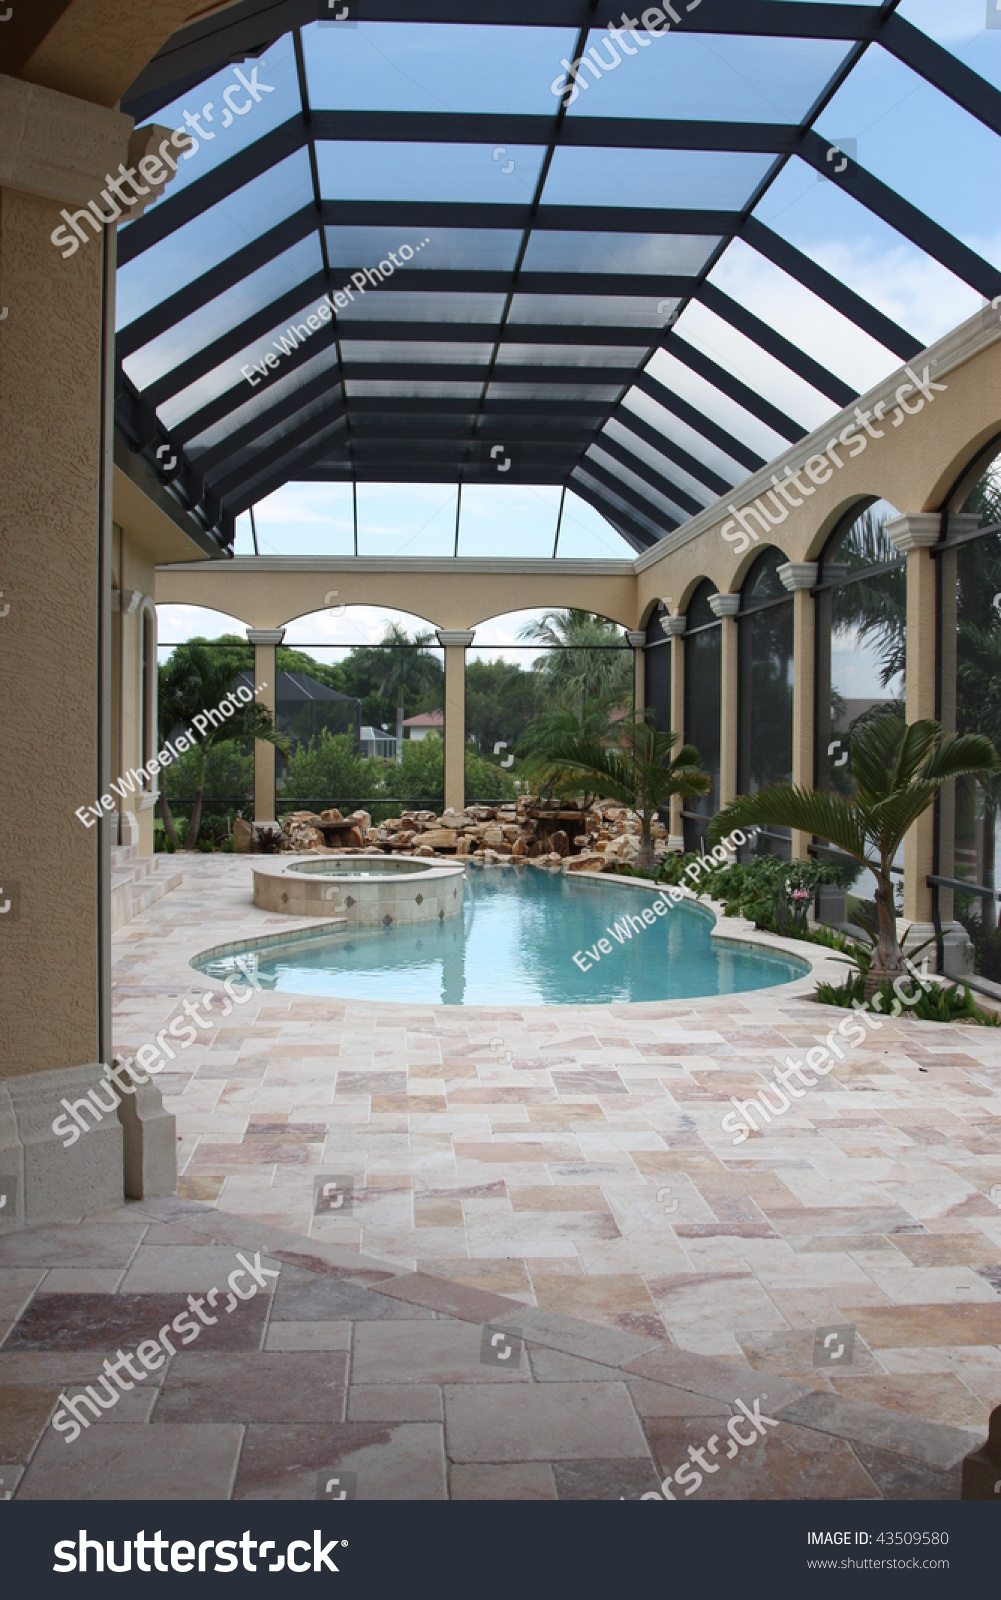 Lanai pool and patio screen stock photo 43509580 for Lanai deck